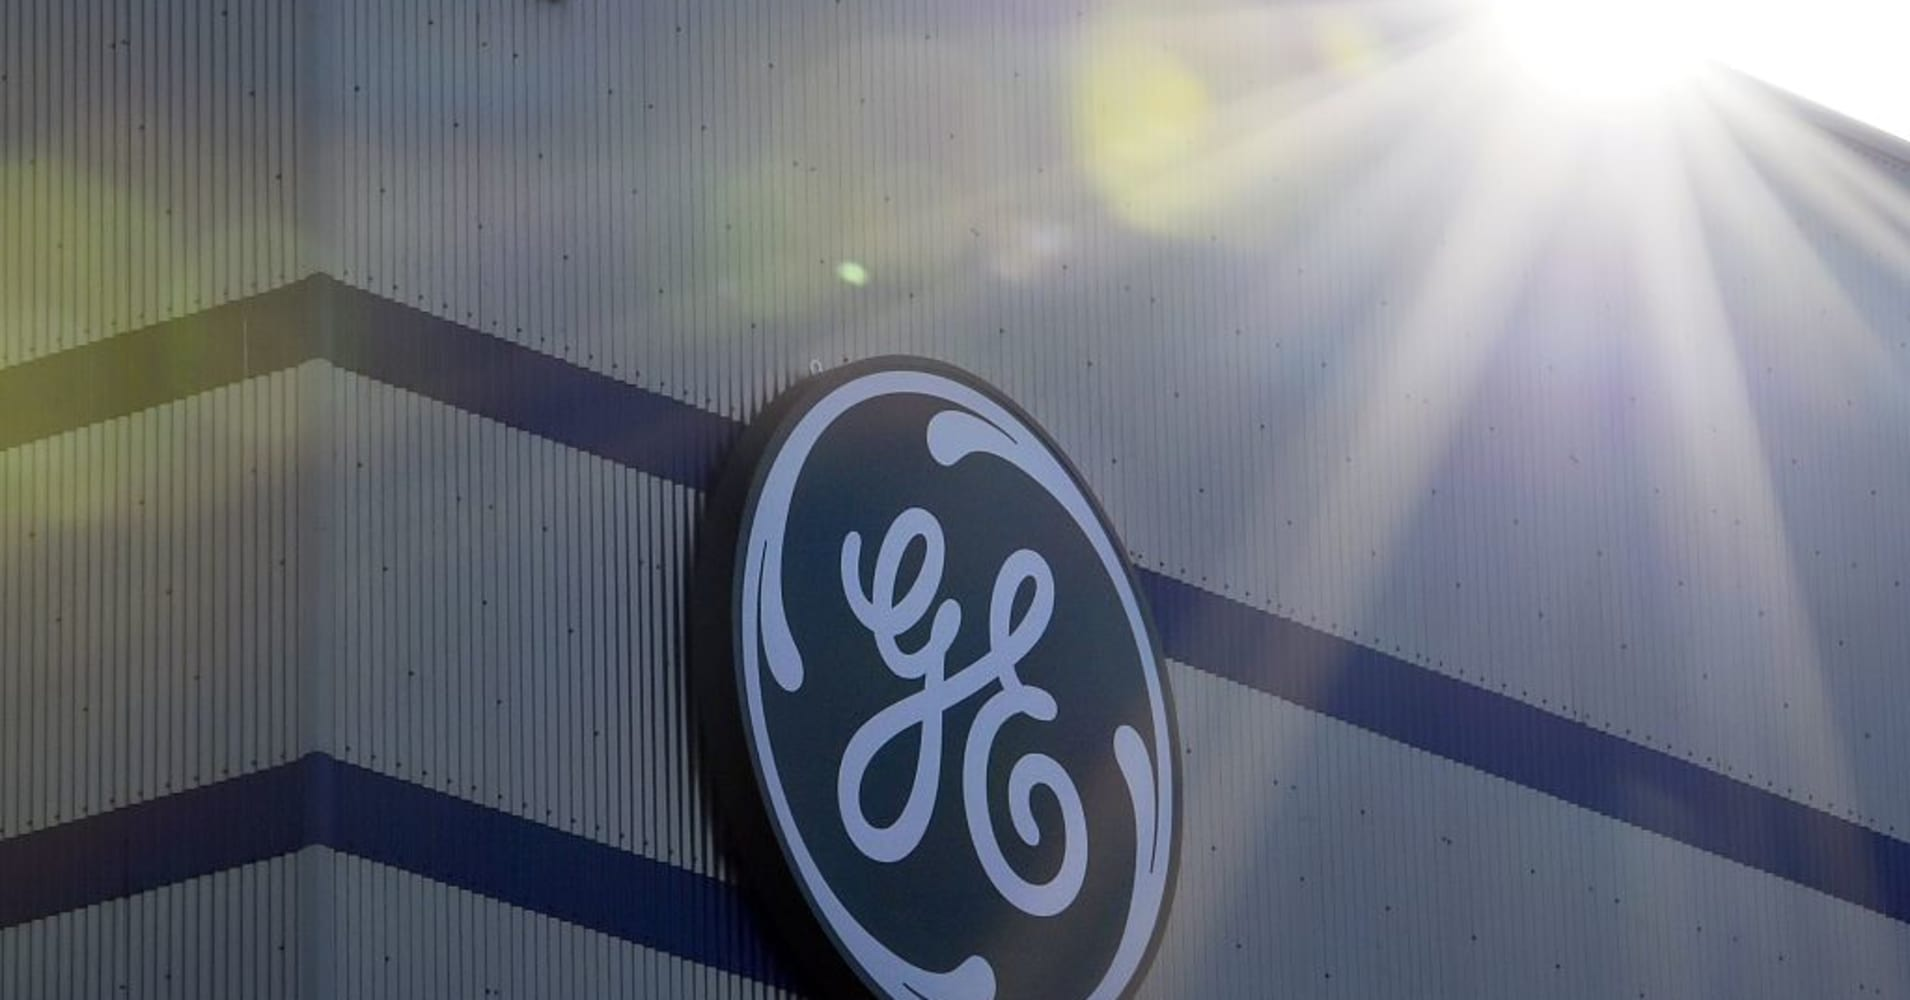 Microsoft is going to buy all the wind power from this GE site